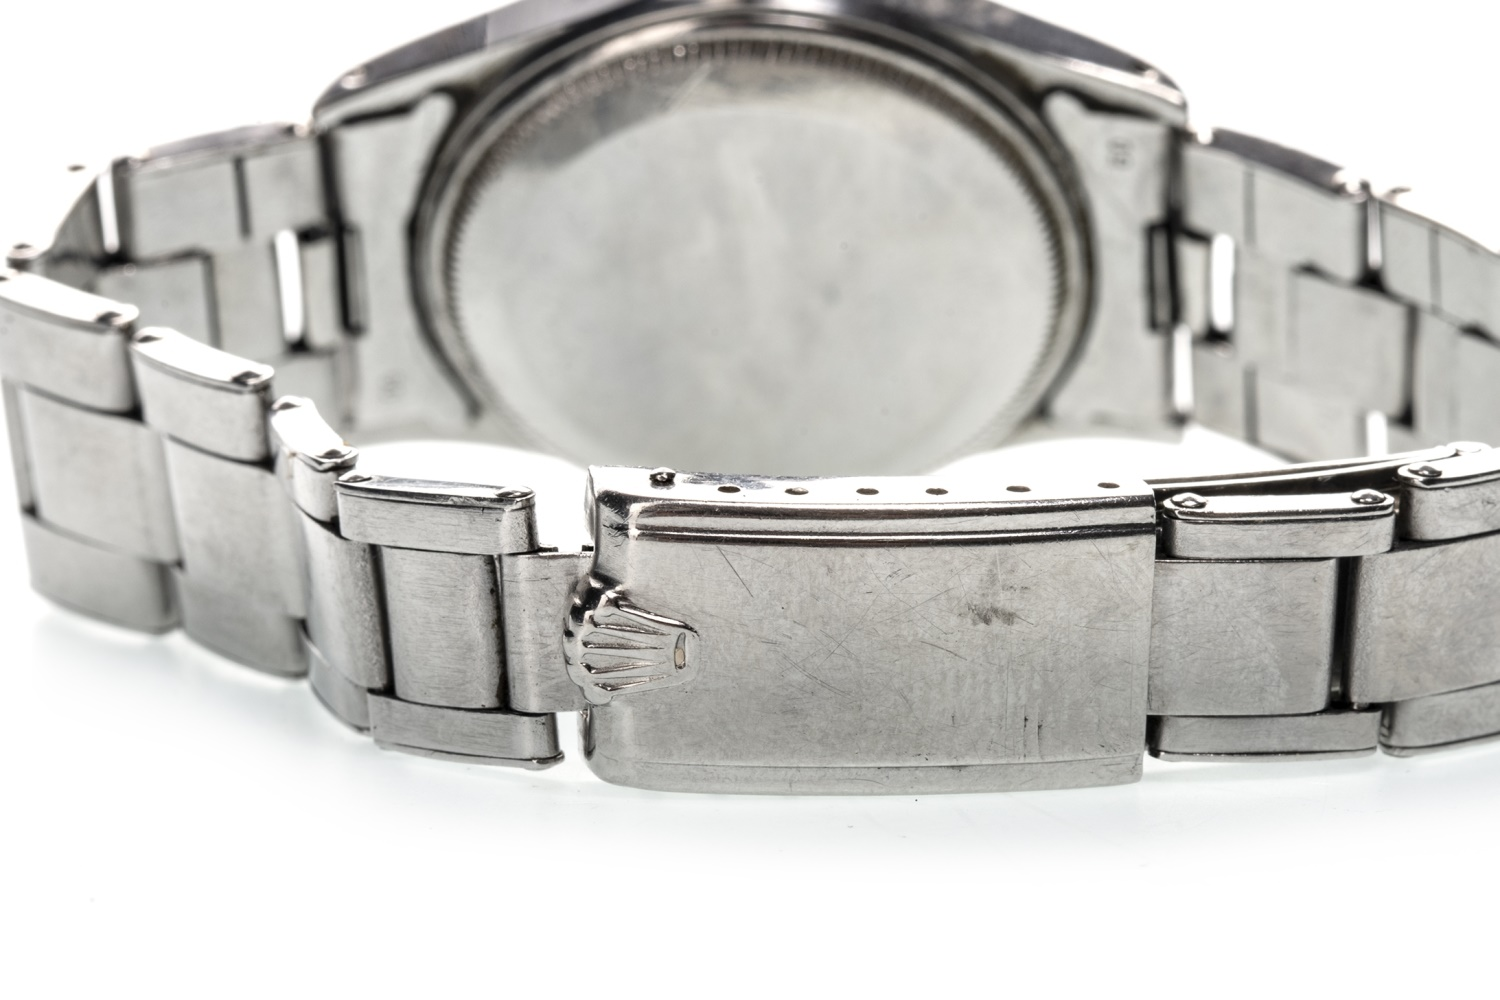 Lot 860 - A GENTLEMAN'S ROLEX OYSTER PERPETUAL STAINLESS STEEL WRIST WATCH